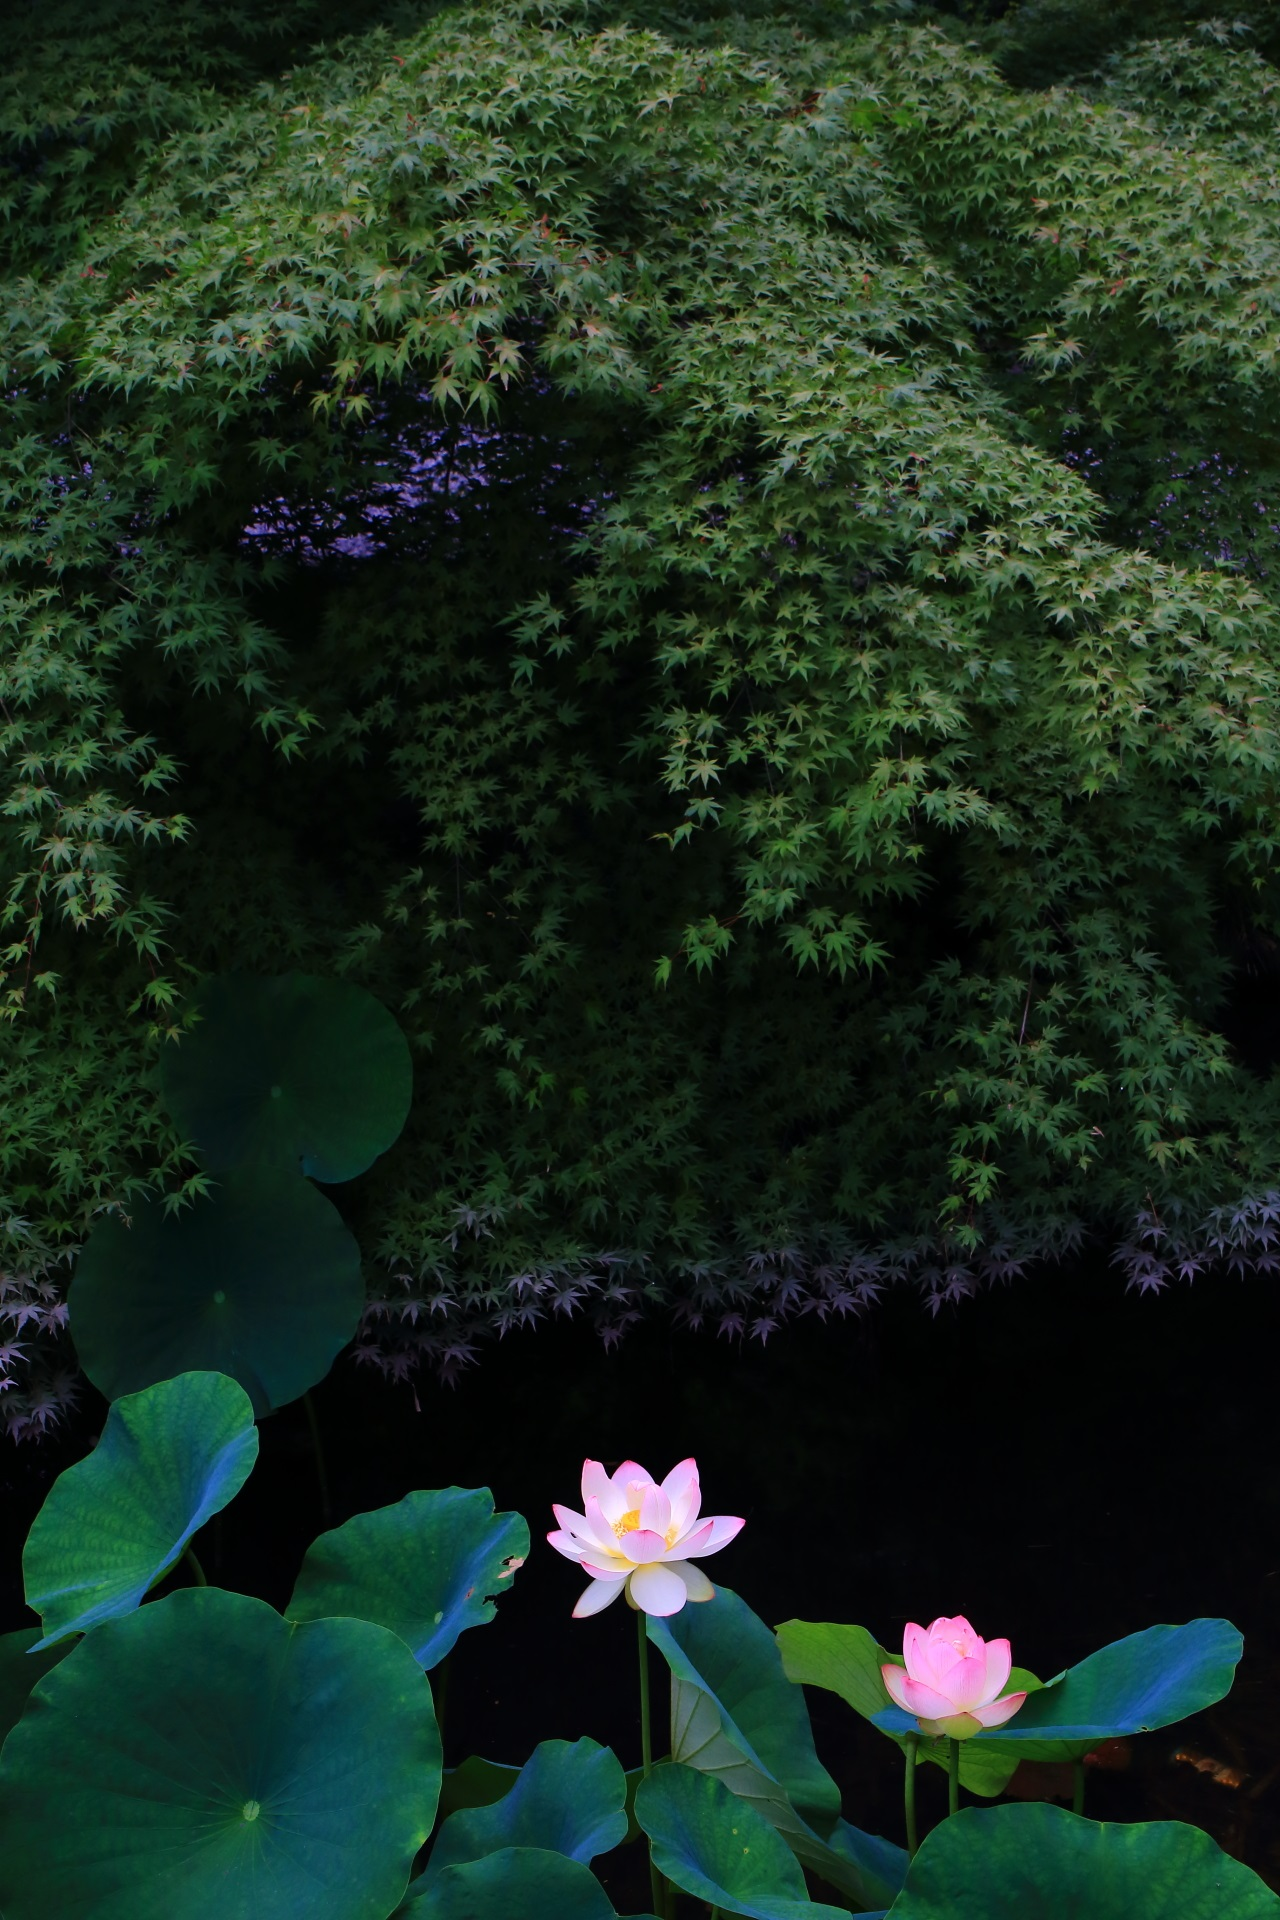 Chion-in Temple in Kyoto where you can enjoy spectacular lotus flowers and blue maples